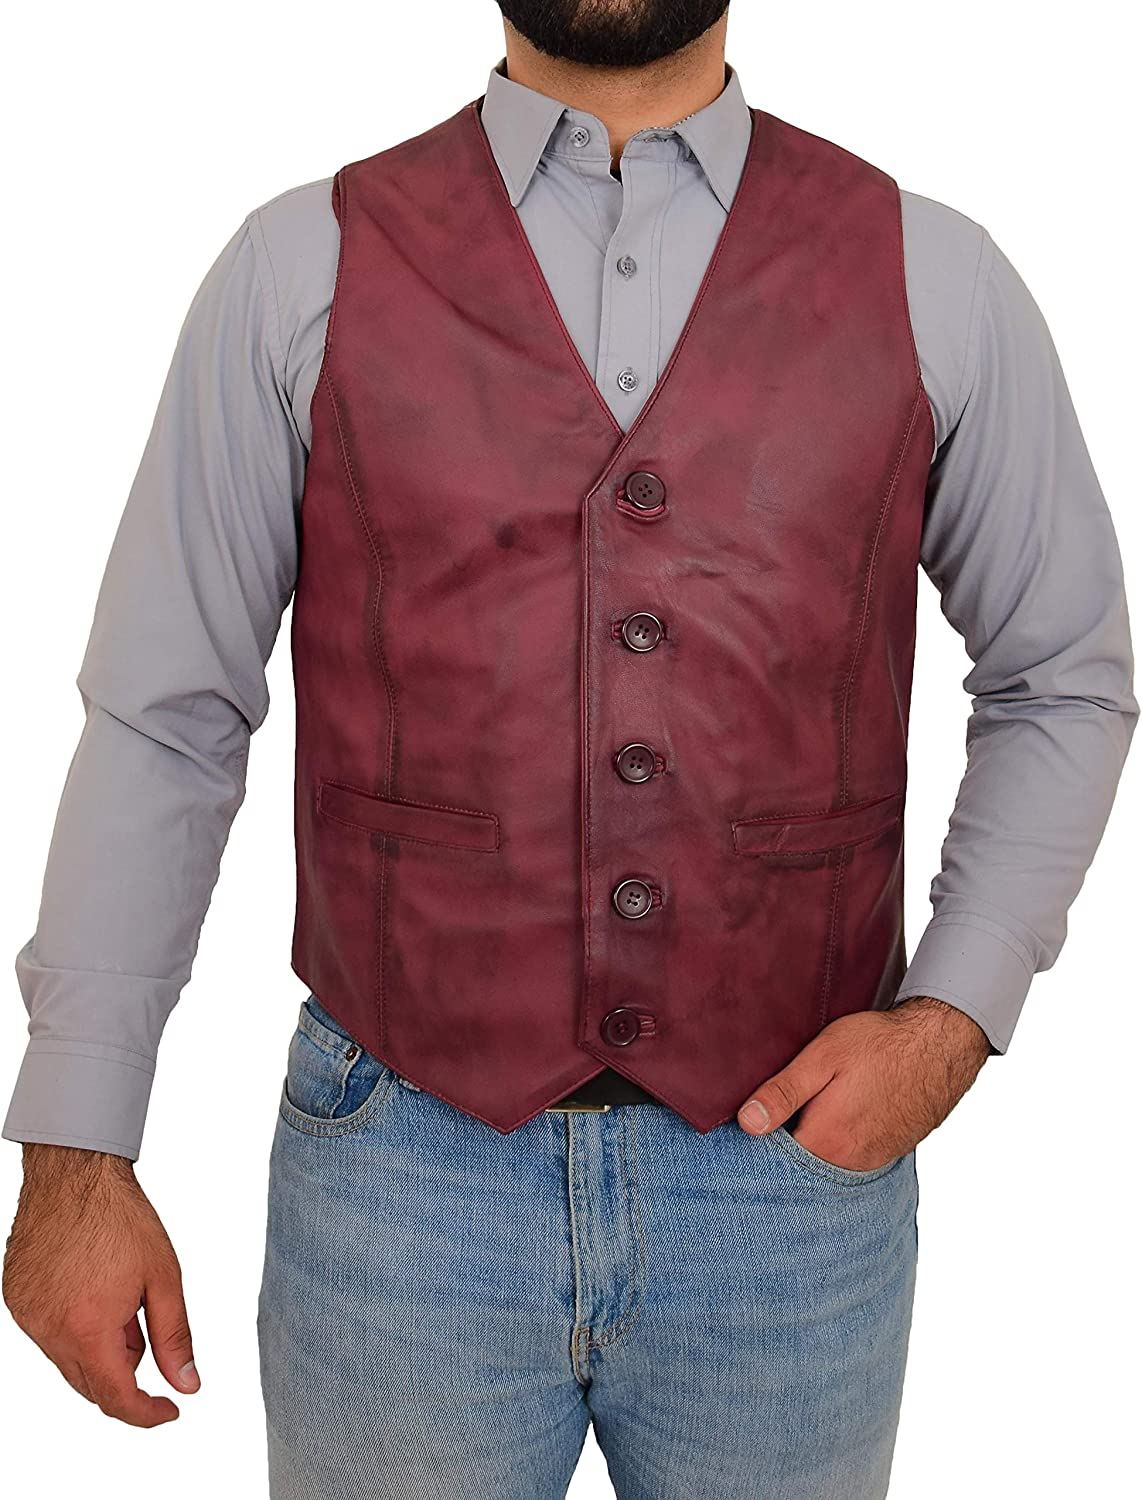 Mens Traditional Leather Waistcoat Button Fastening Vest Nick Burgundy